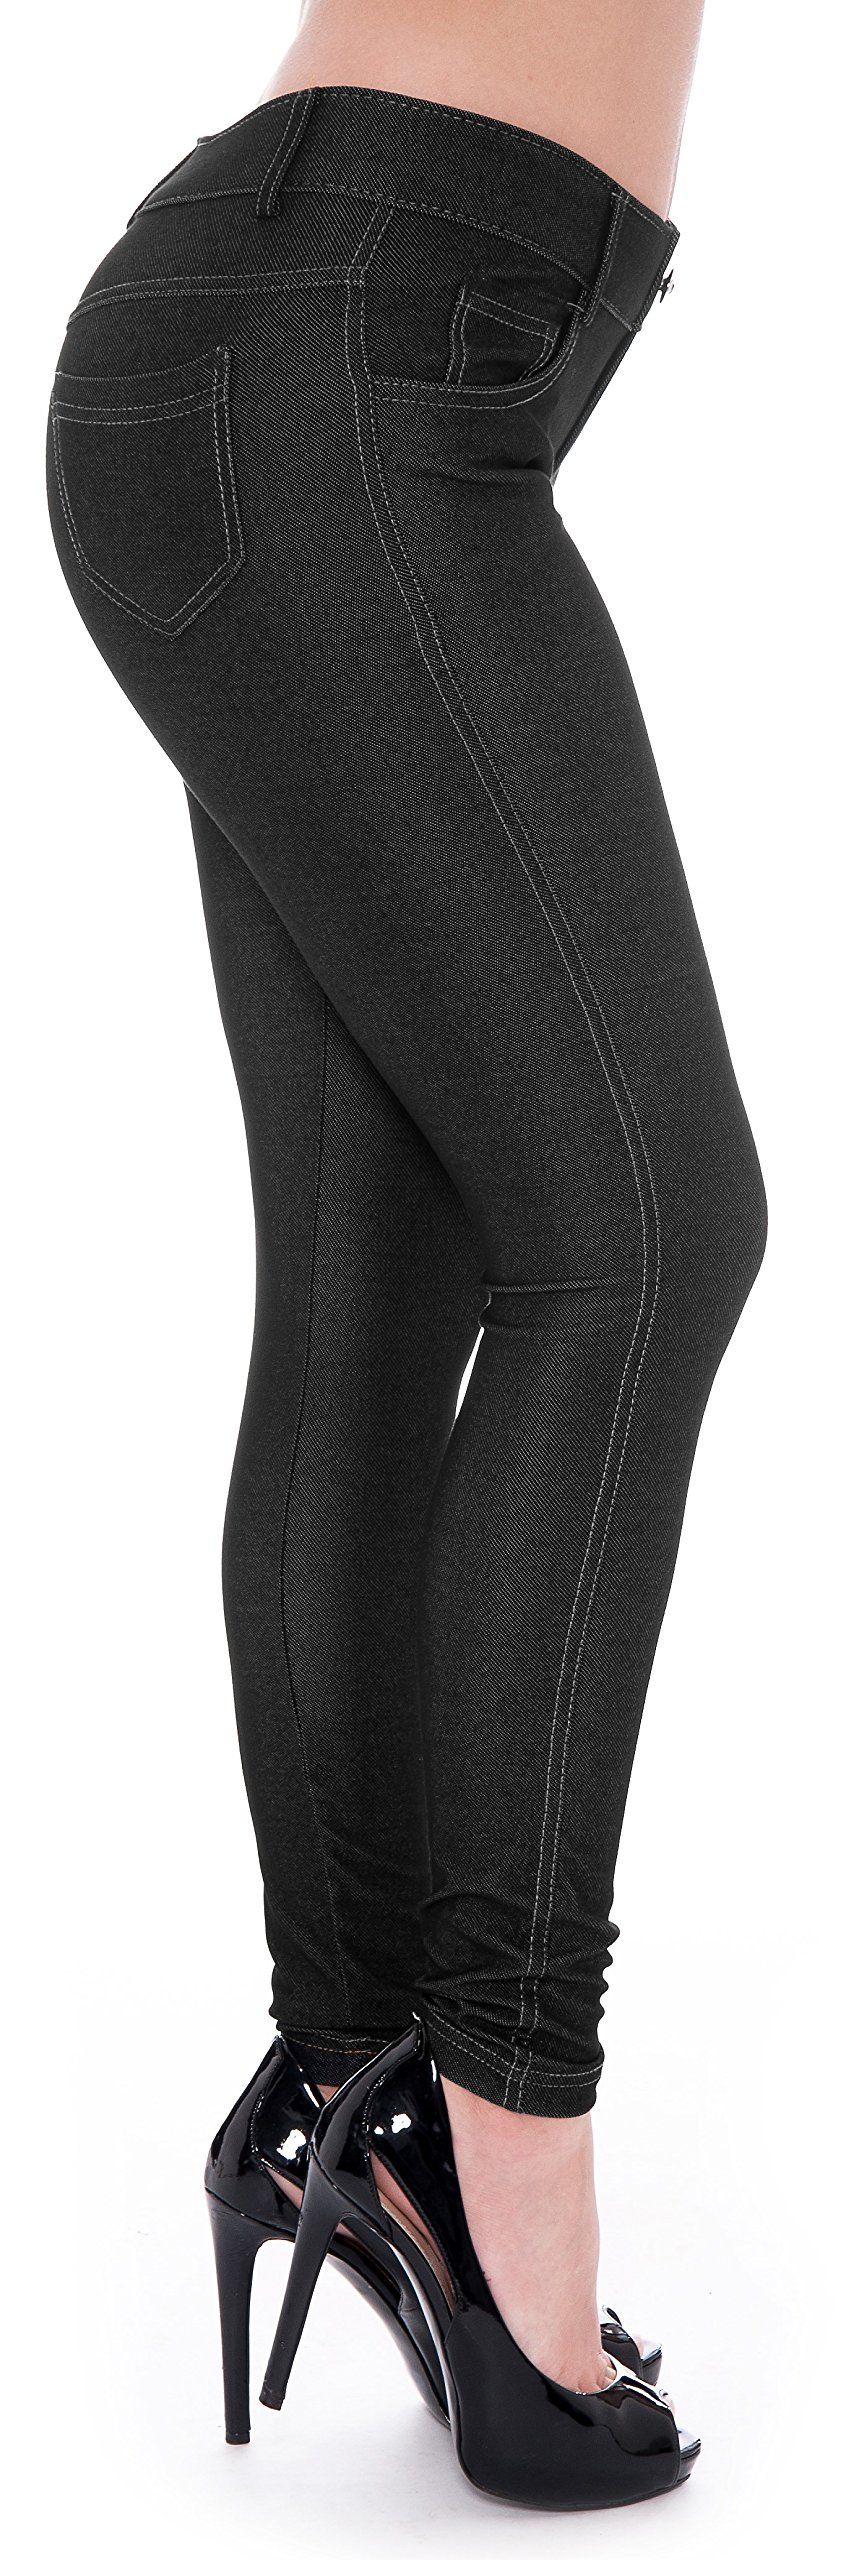 Unique Styles Women's Basic Jeggings Leggings Stretchy 5 Pockets Pants Regular Plus Sizes (Small, Black Solid)